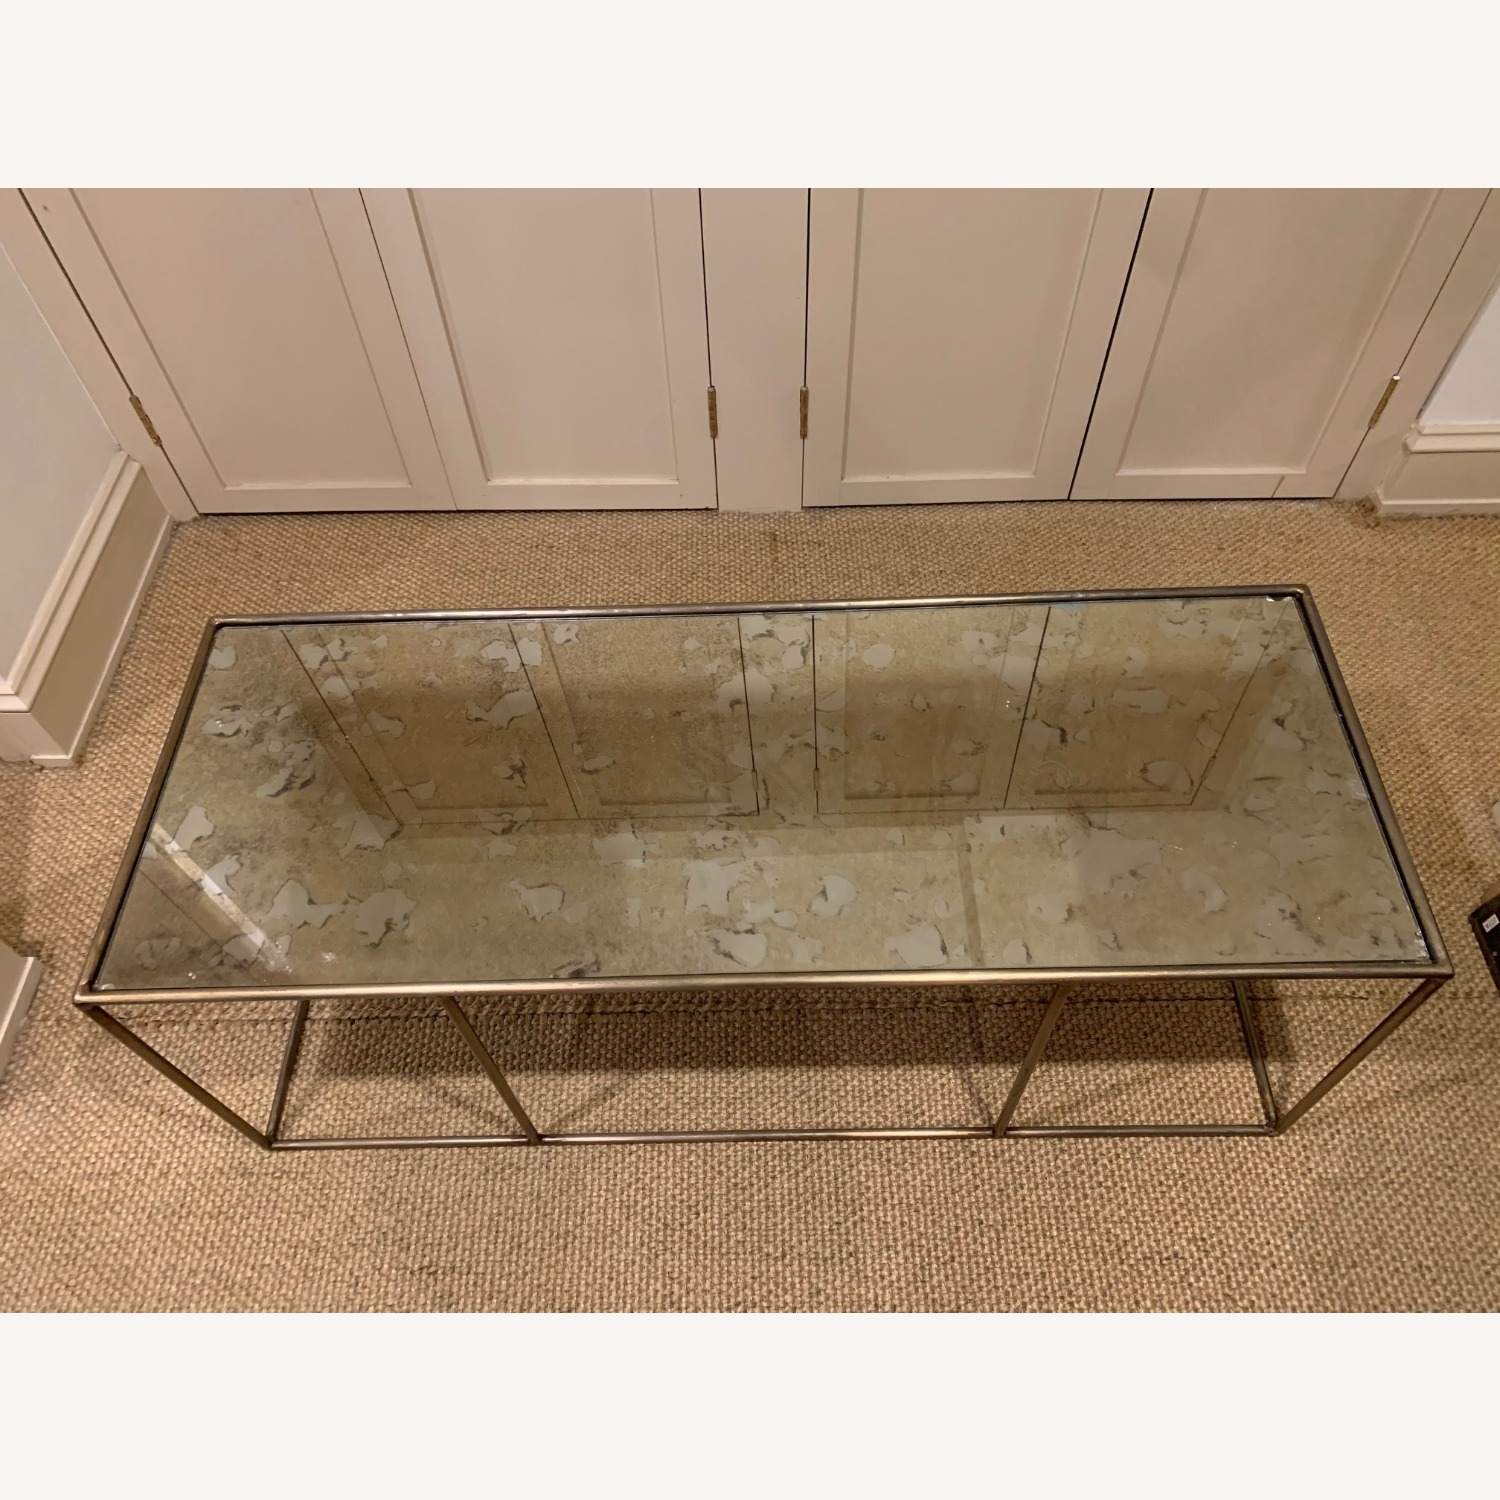 Arteriors Othello Coffee Table - image-7